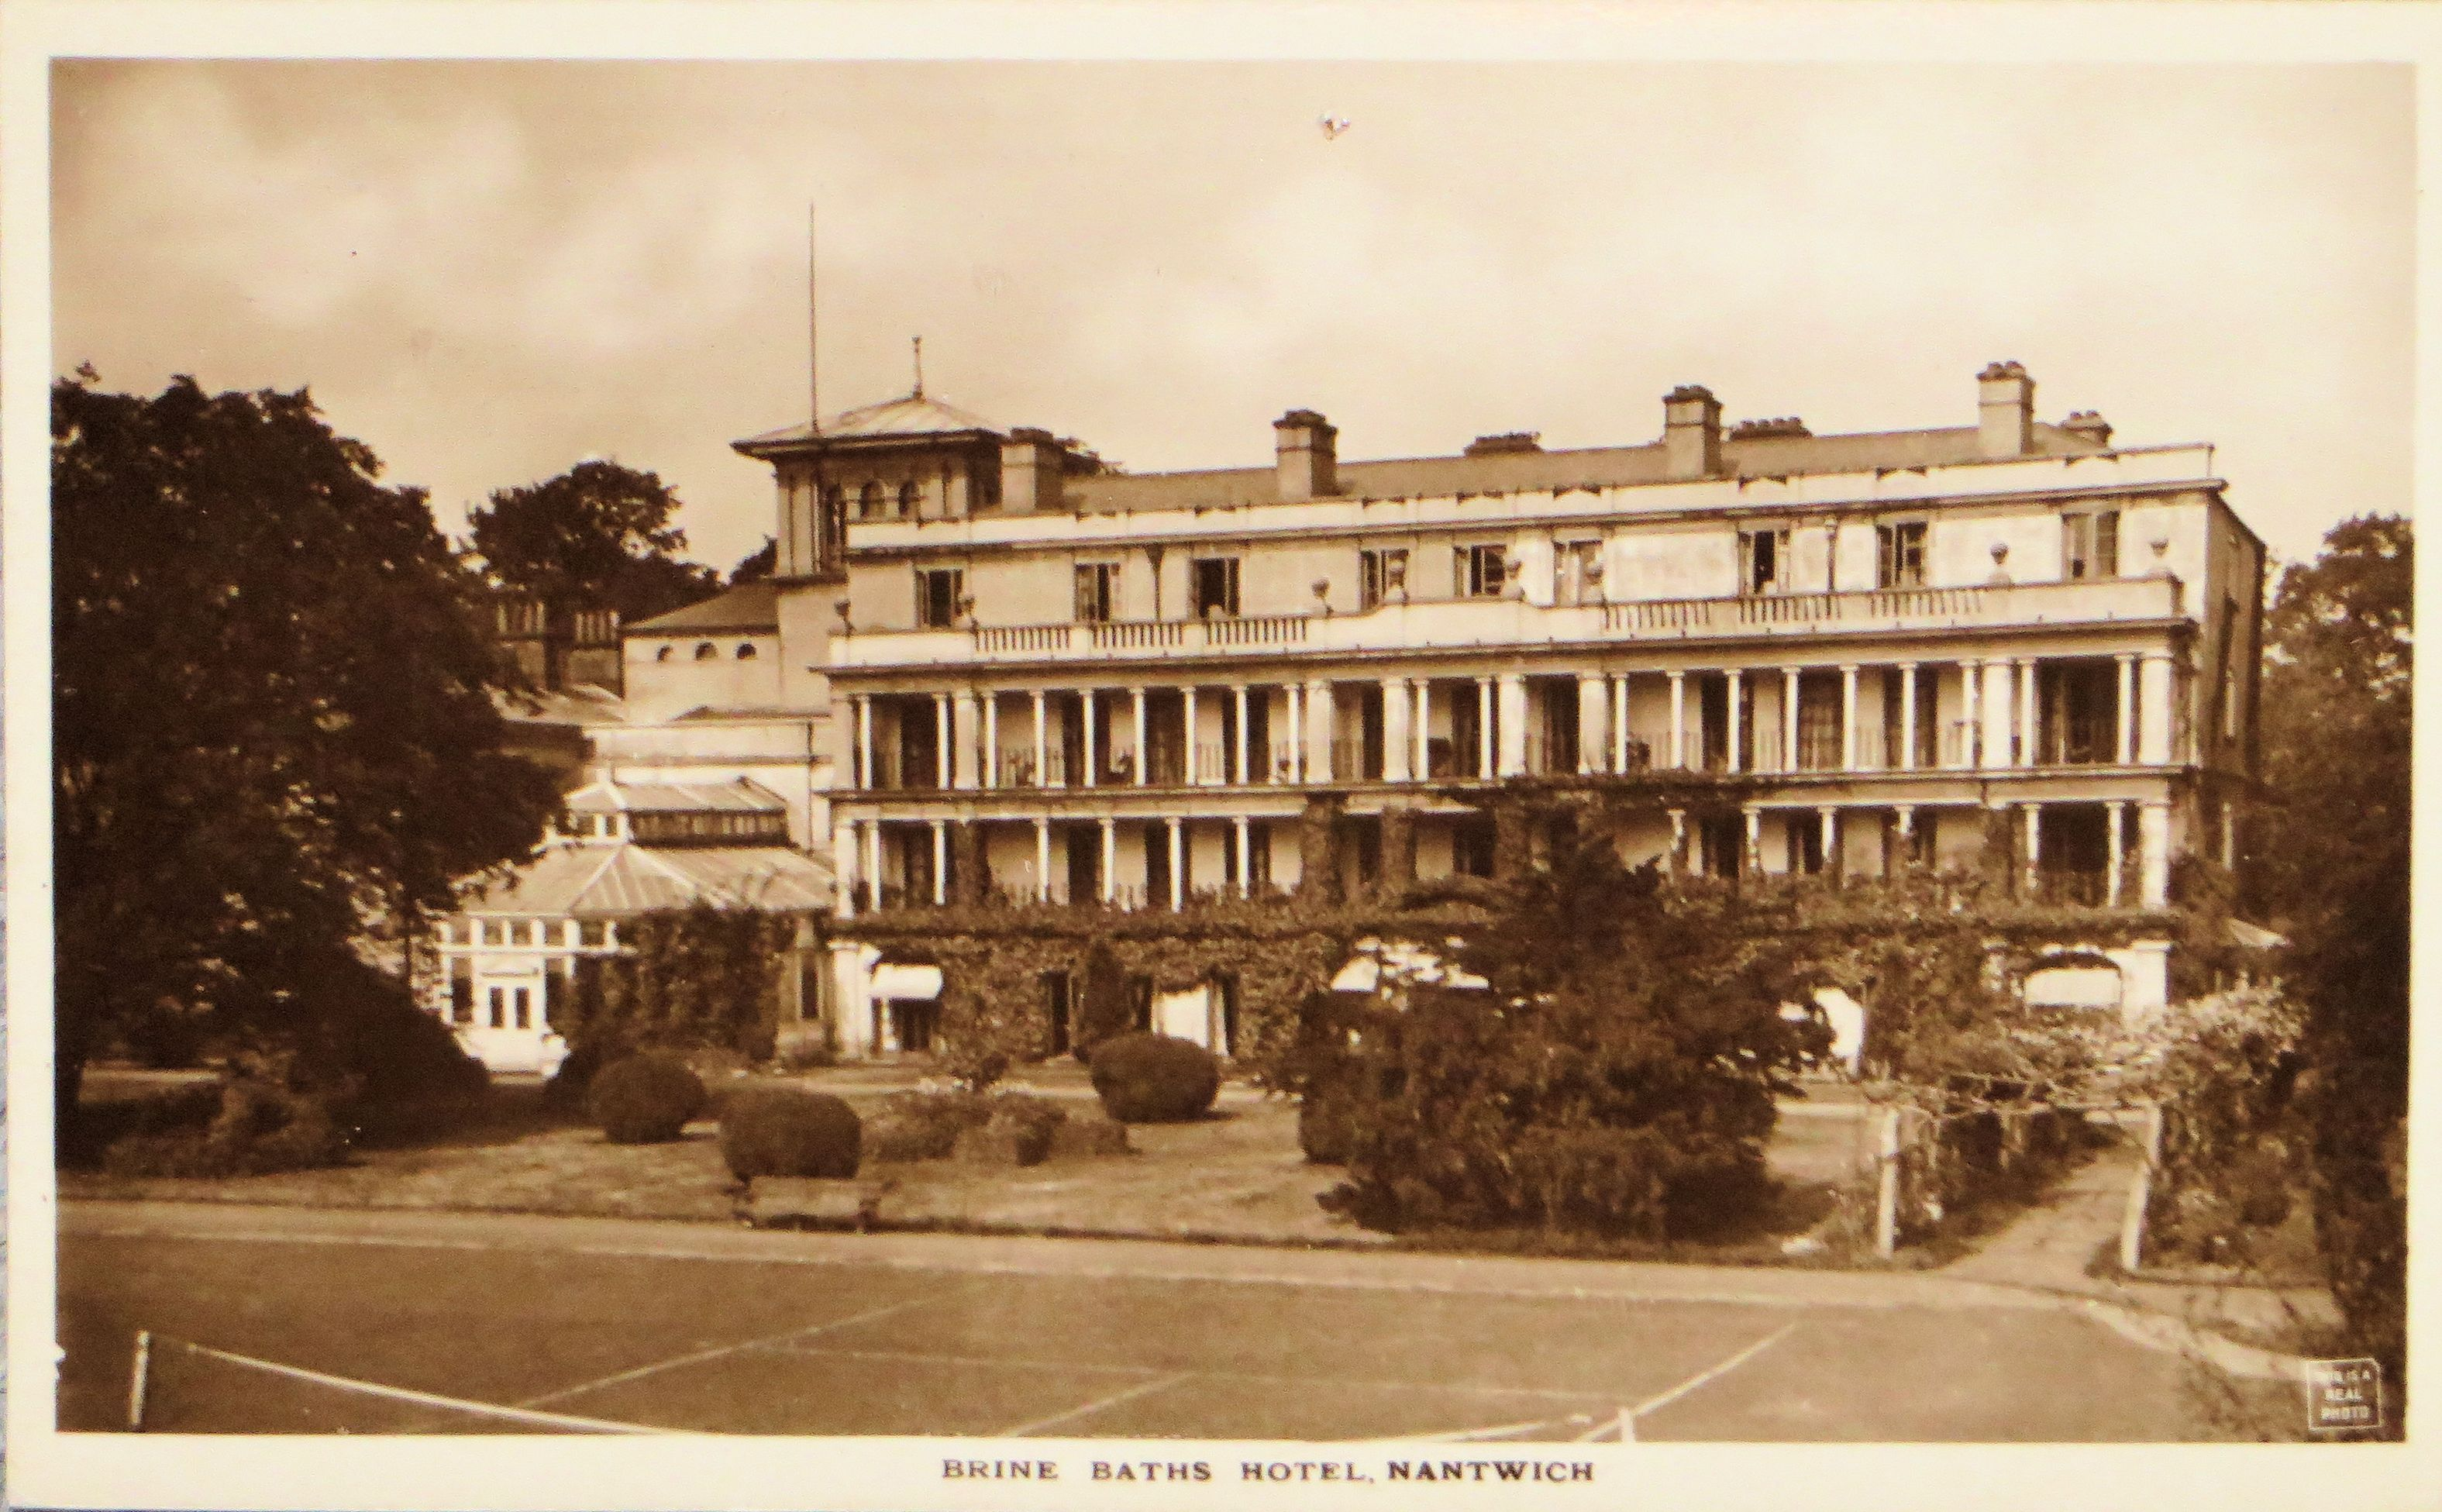 Old postcard of Brine Baths Hotel